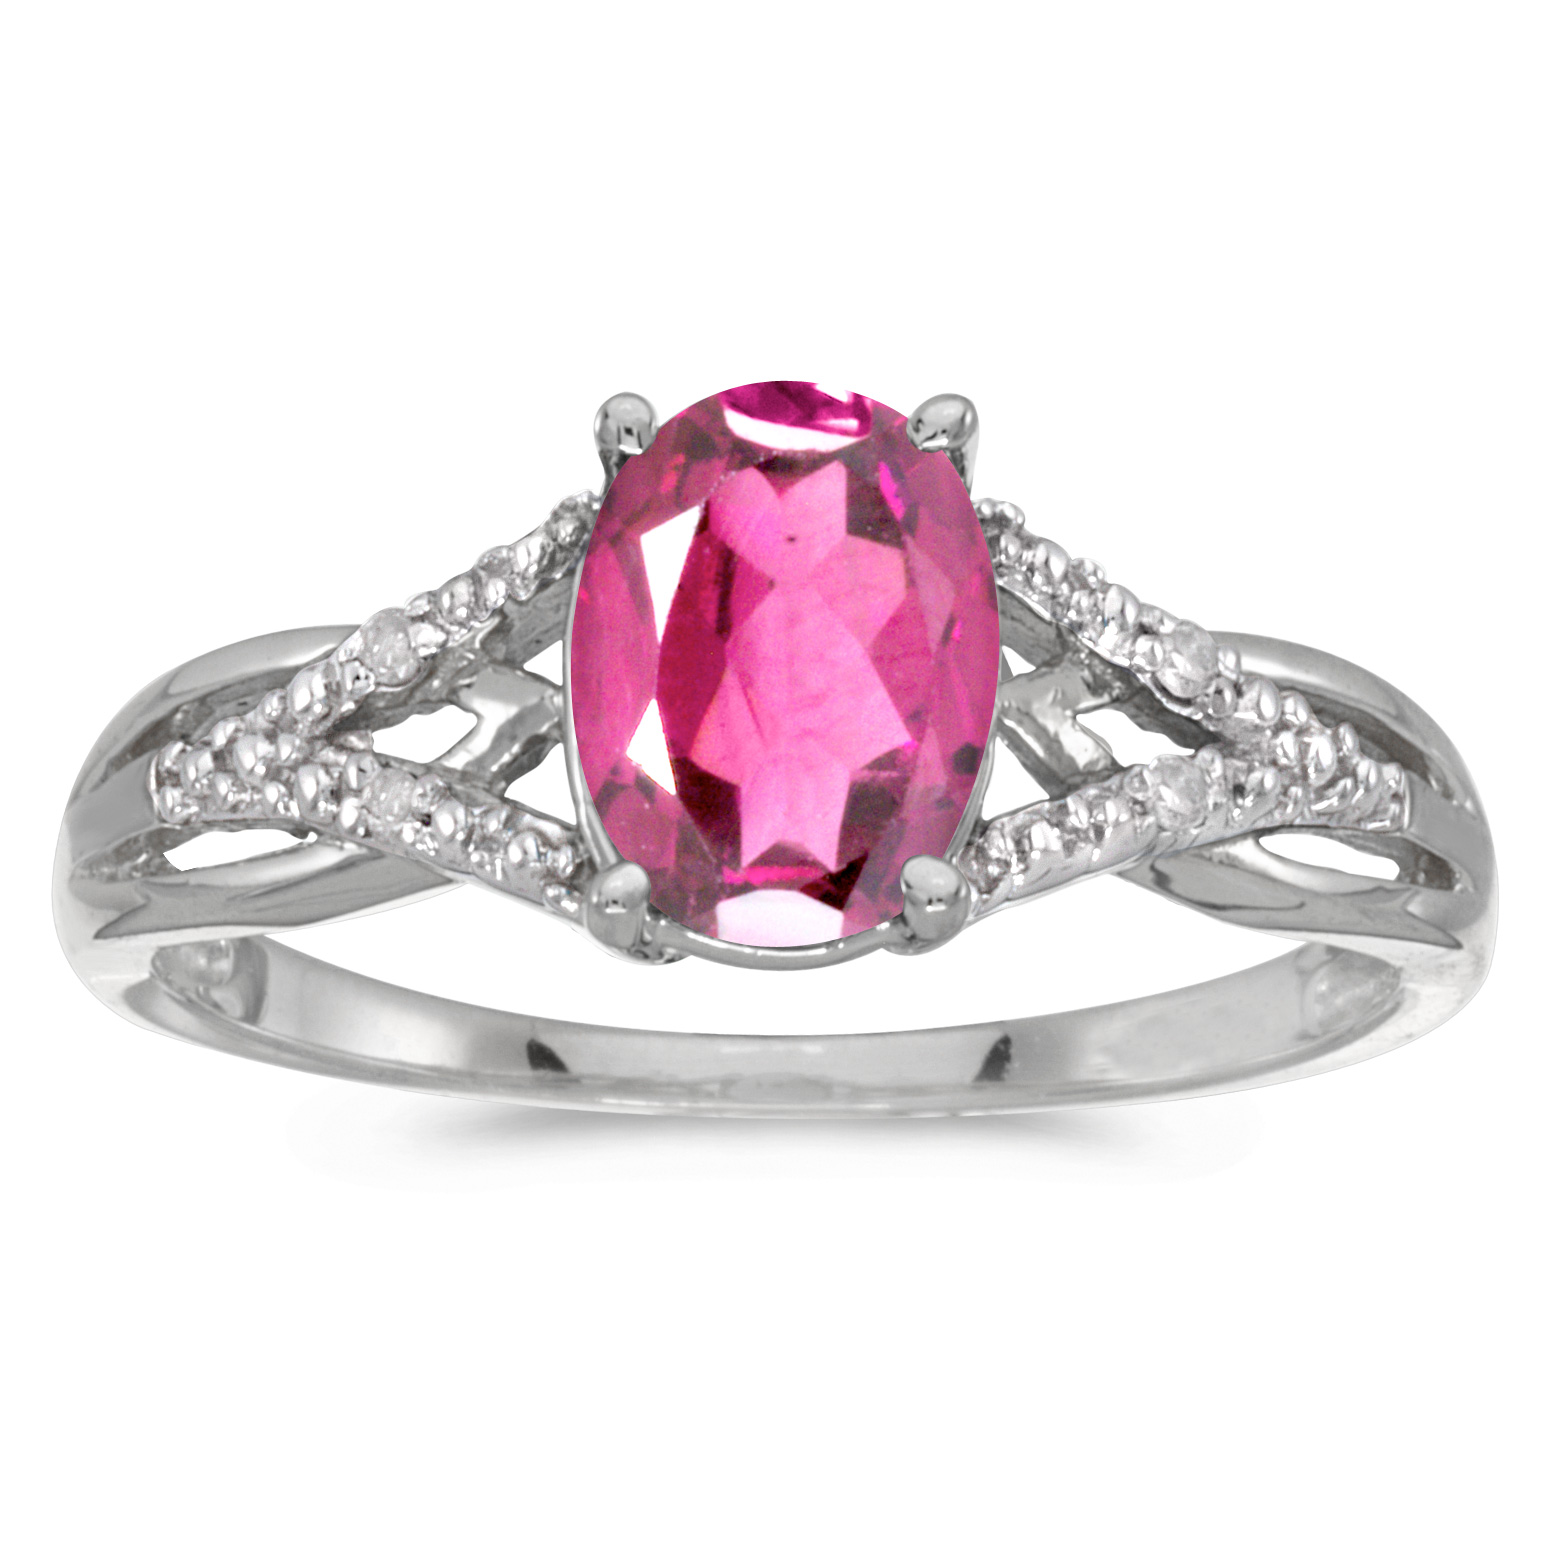 14k White Gold Oval Pink Topaz And Diamond Ring by